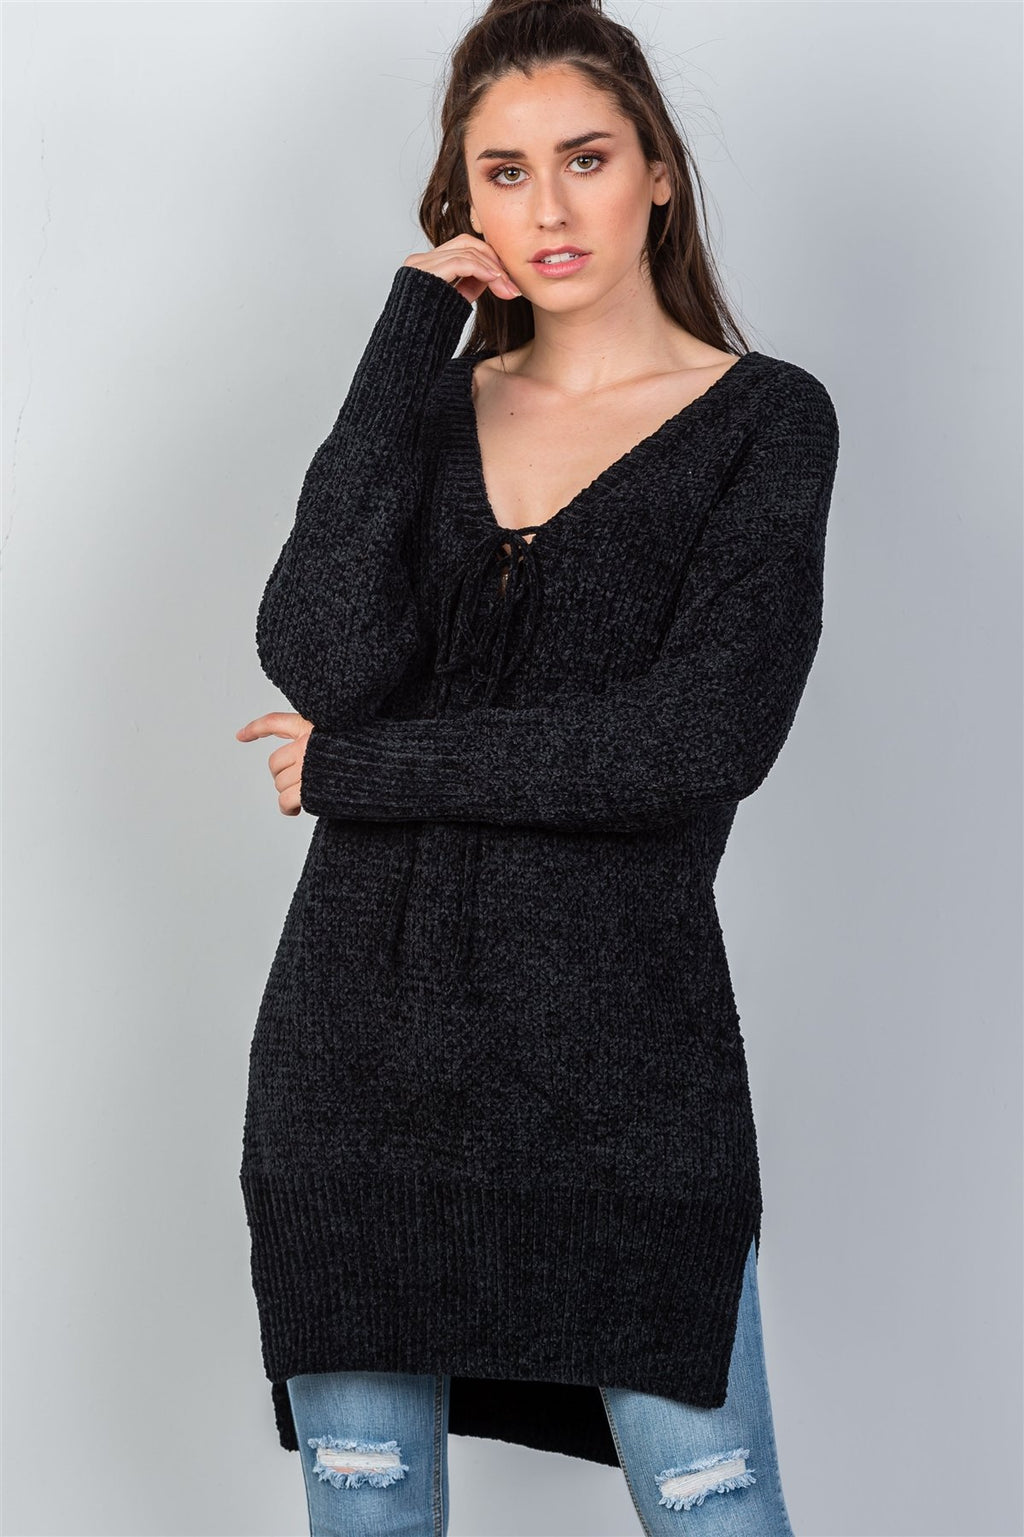 Black Keyhole Choker Long Tail Sweater